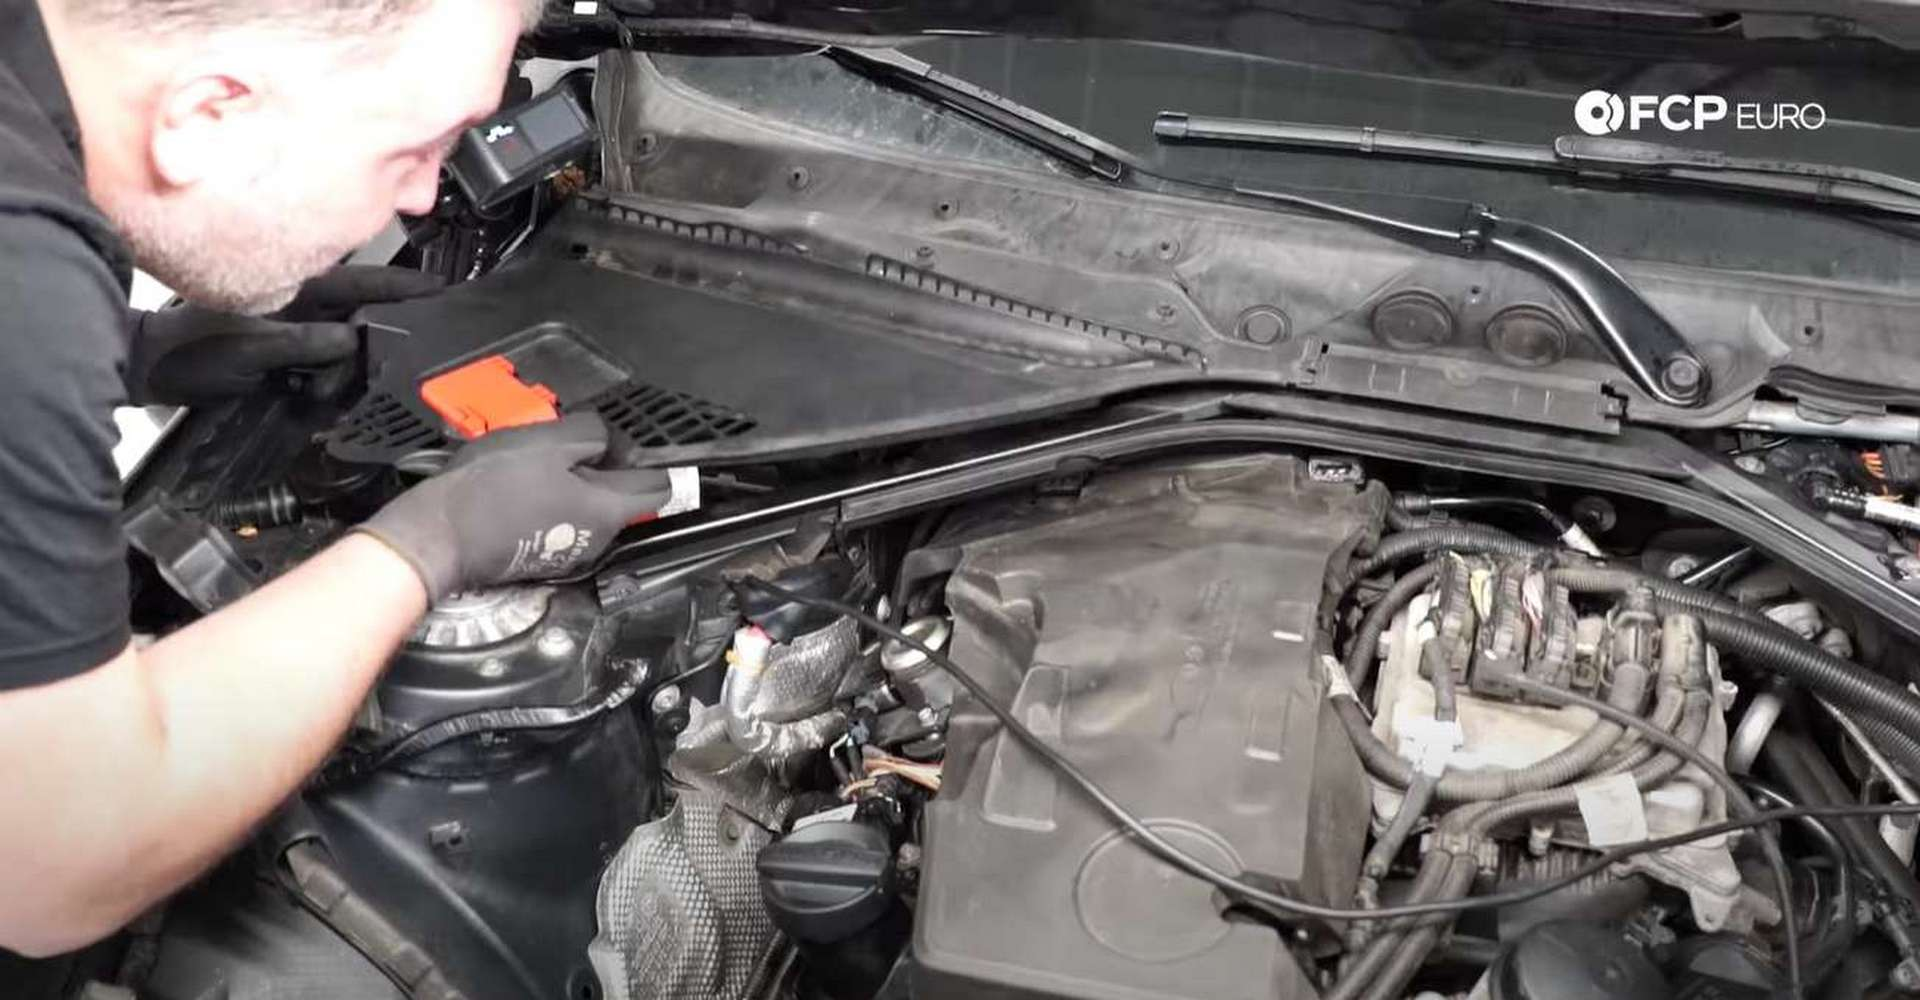 DIY BMW F30 Fuel Injector Replacement refitting the upper cowl pieces